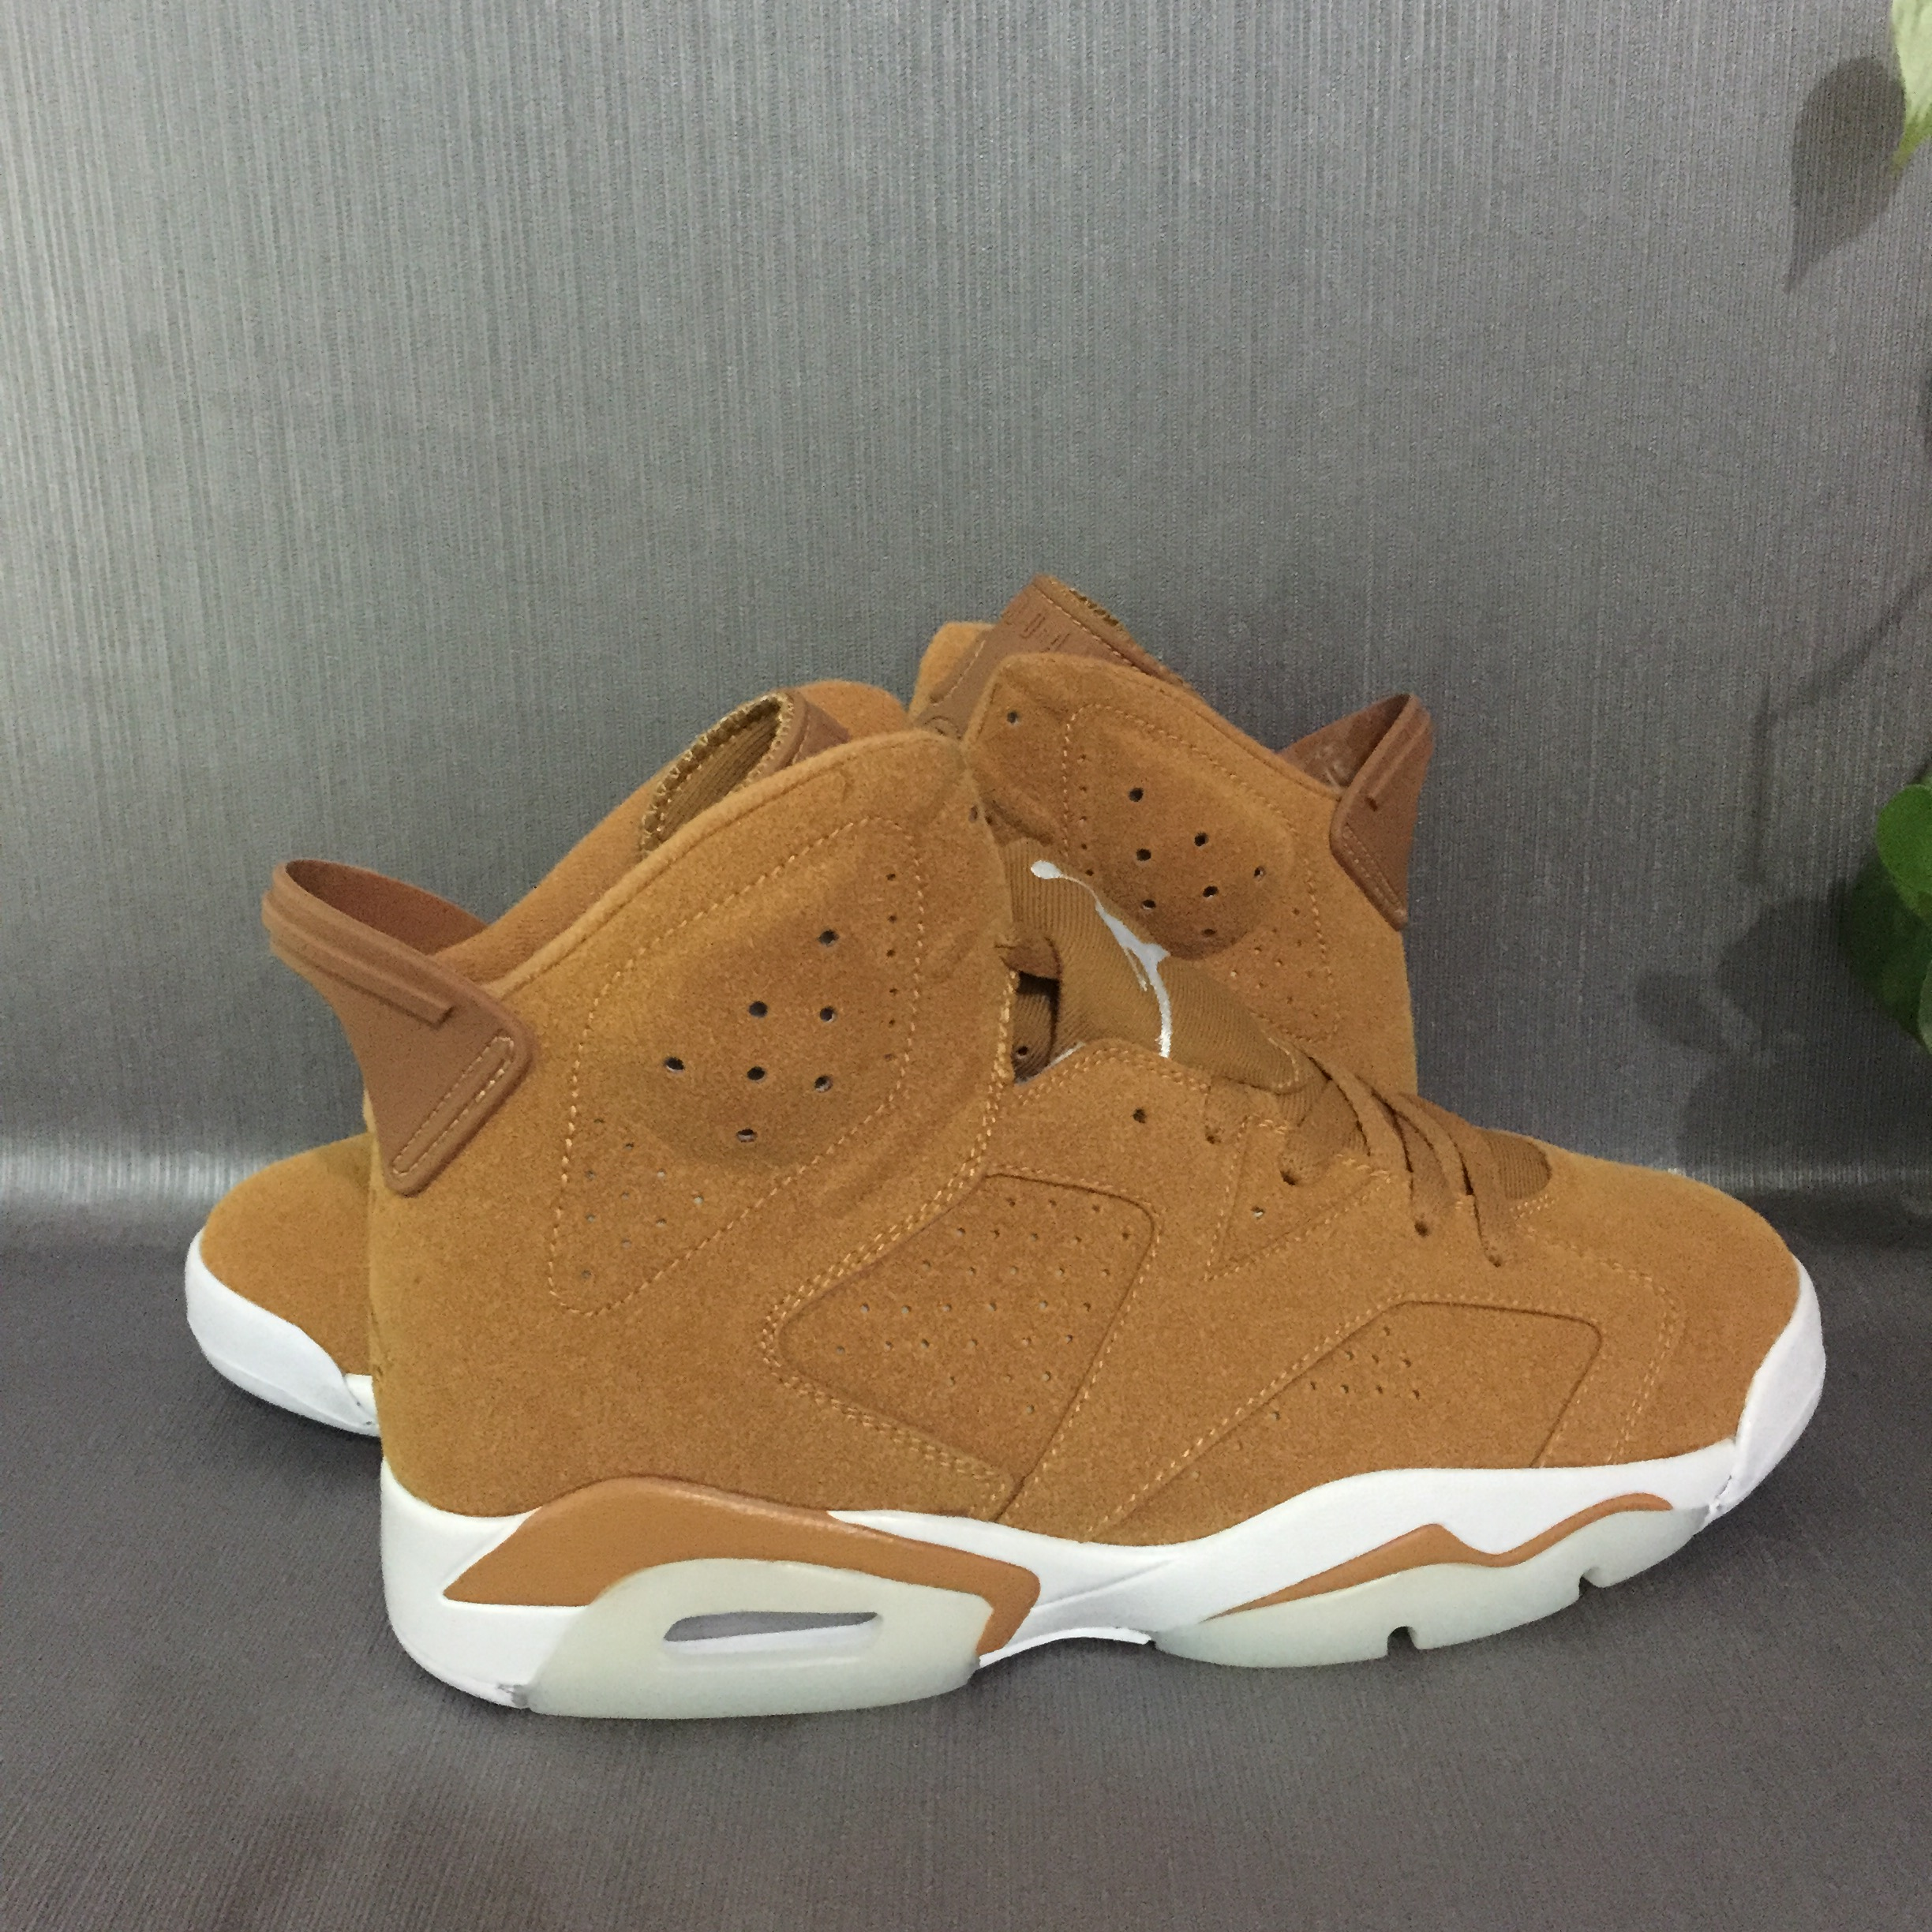 31d5fd7e8e3a31 2017 Men Air Jordan 6 Yellow White Shoes  REALAJS332  -  83.00 ...